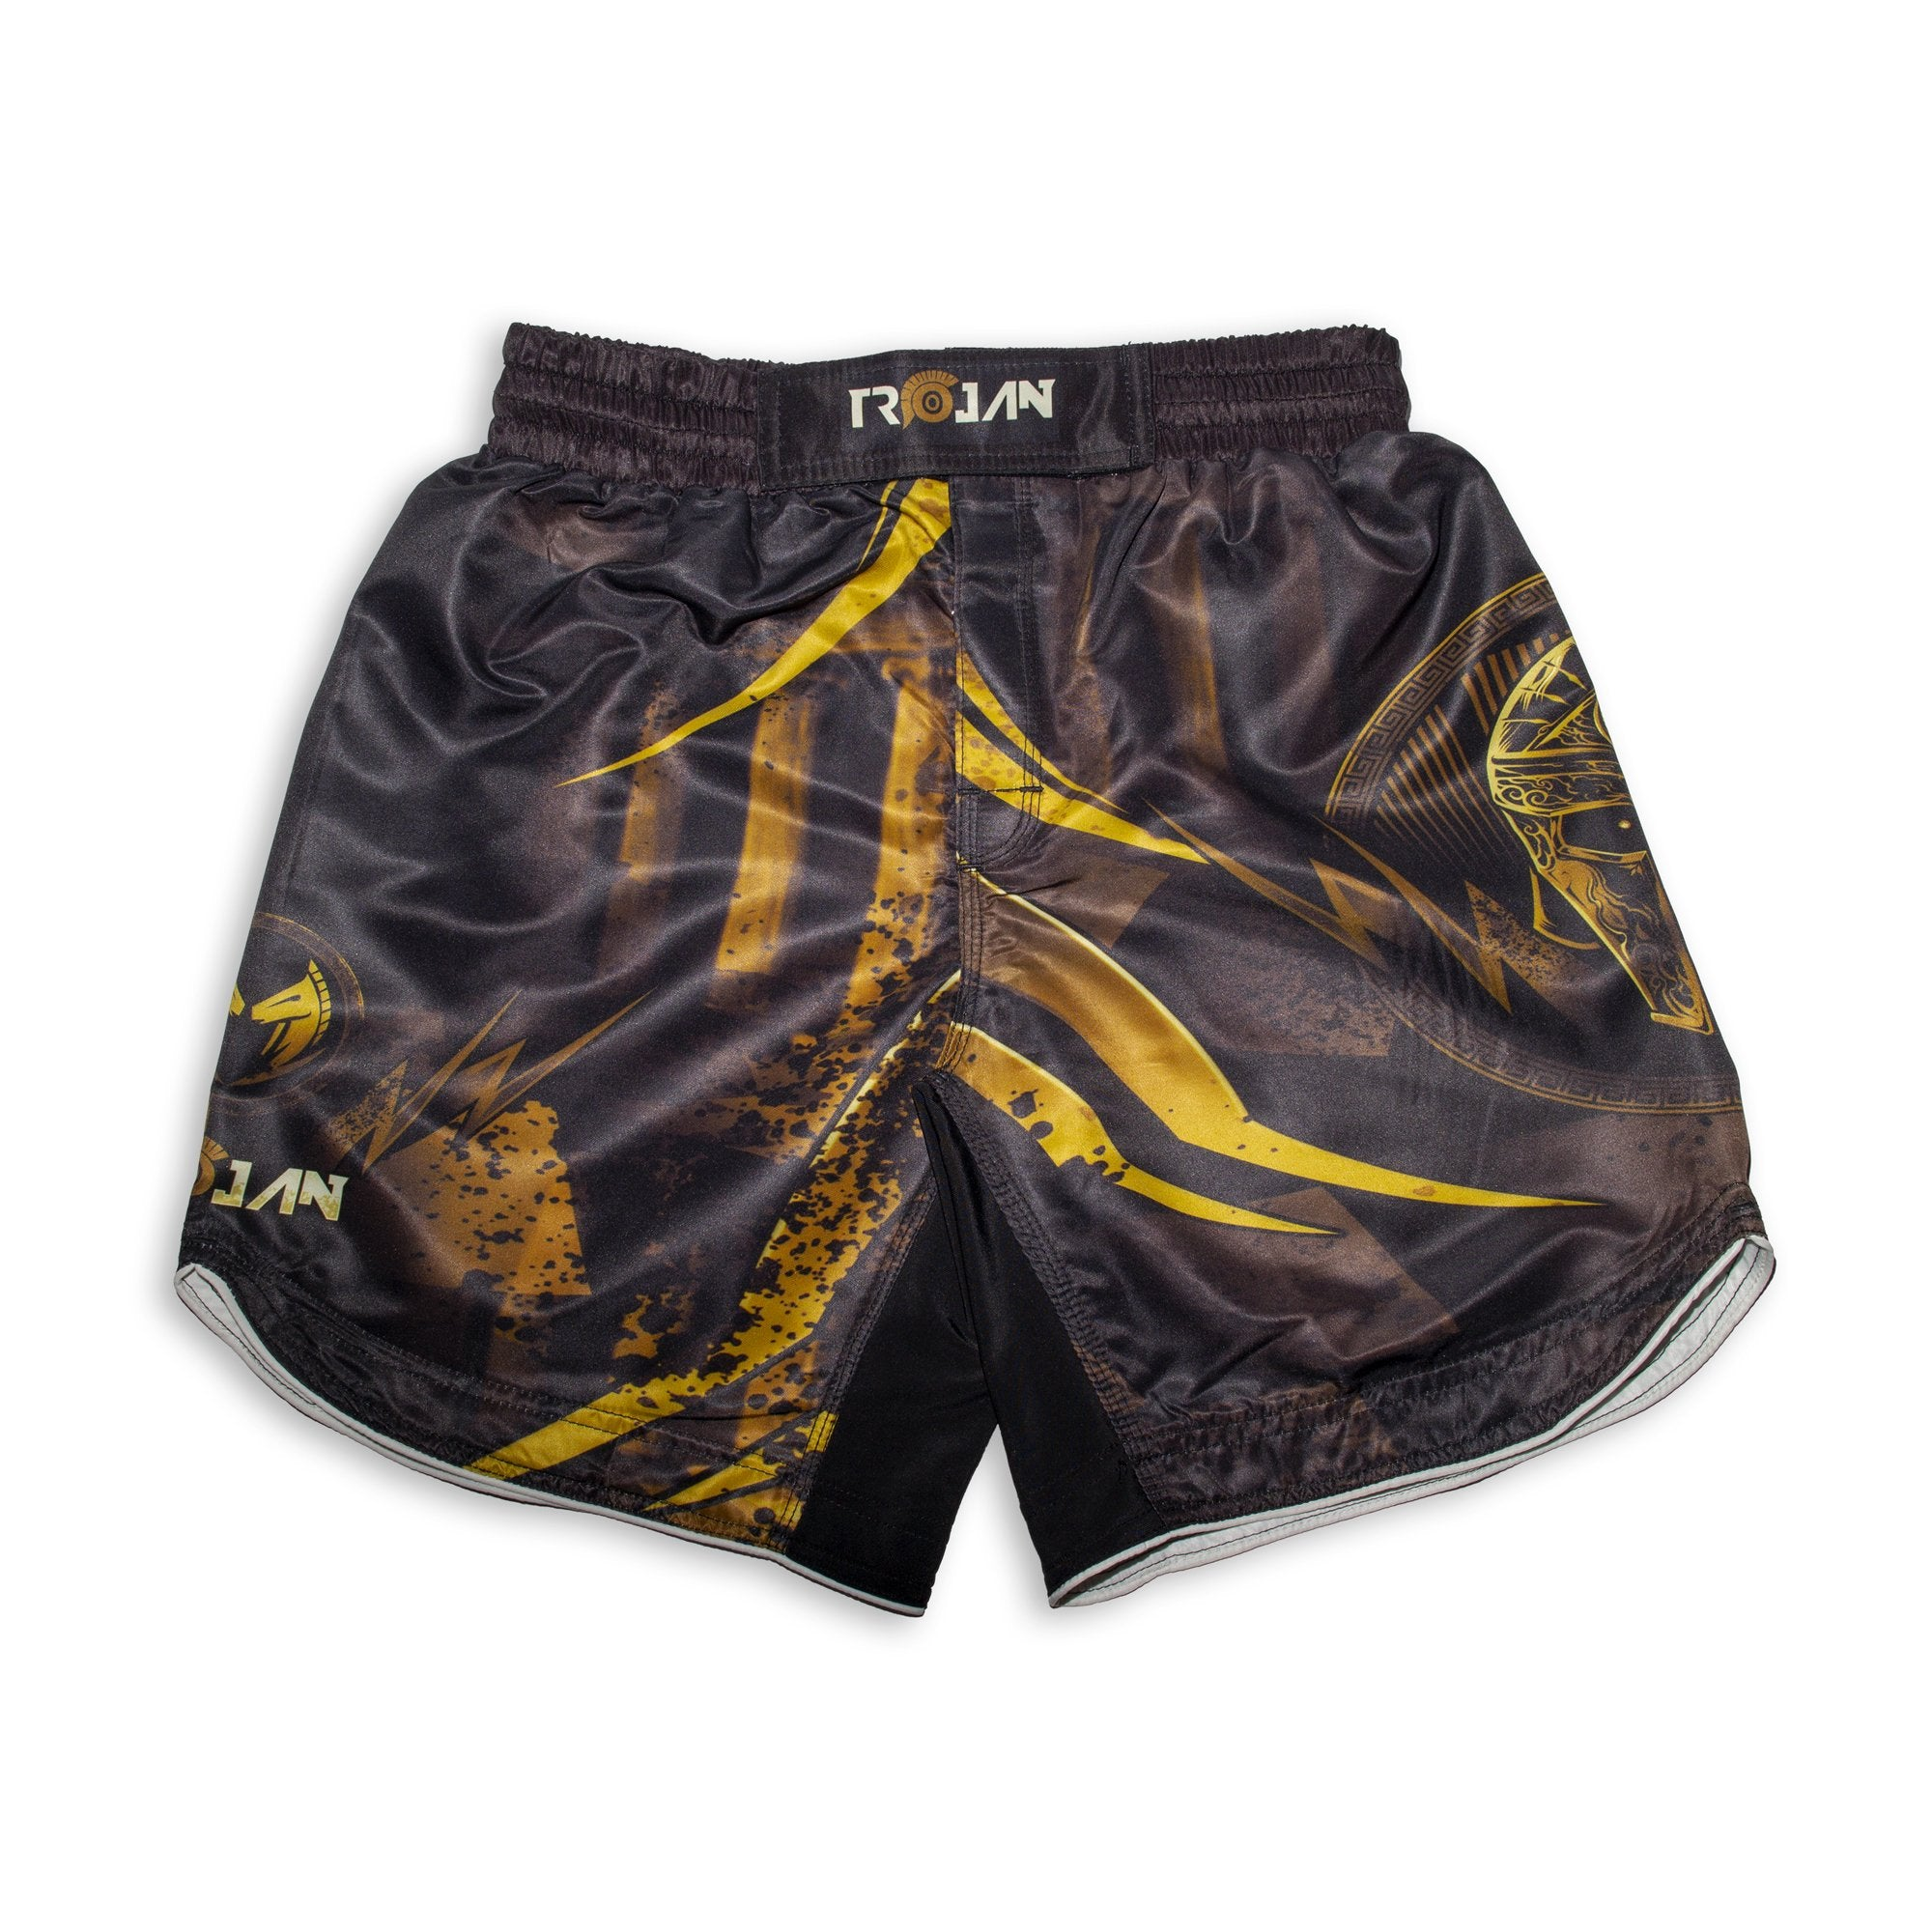 VITTORIA | FIGHT SHORTS